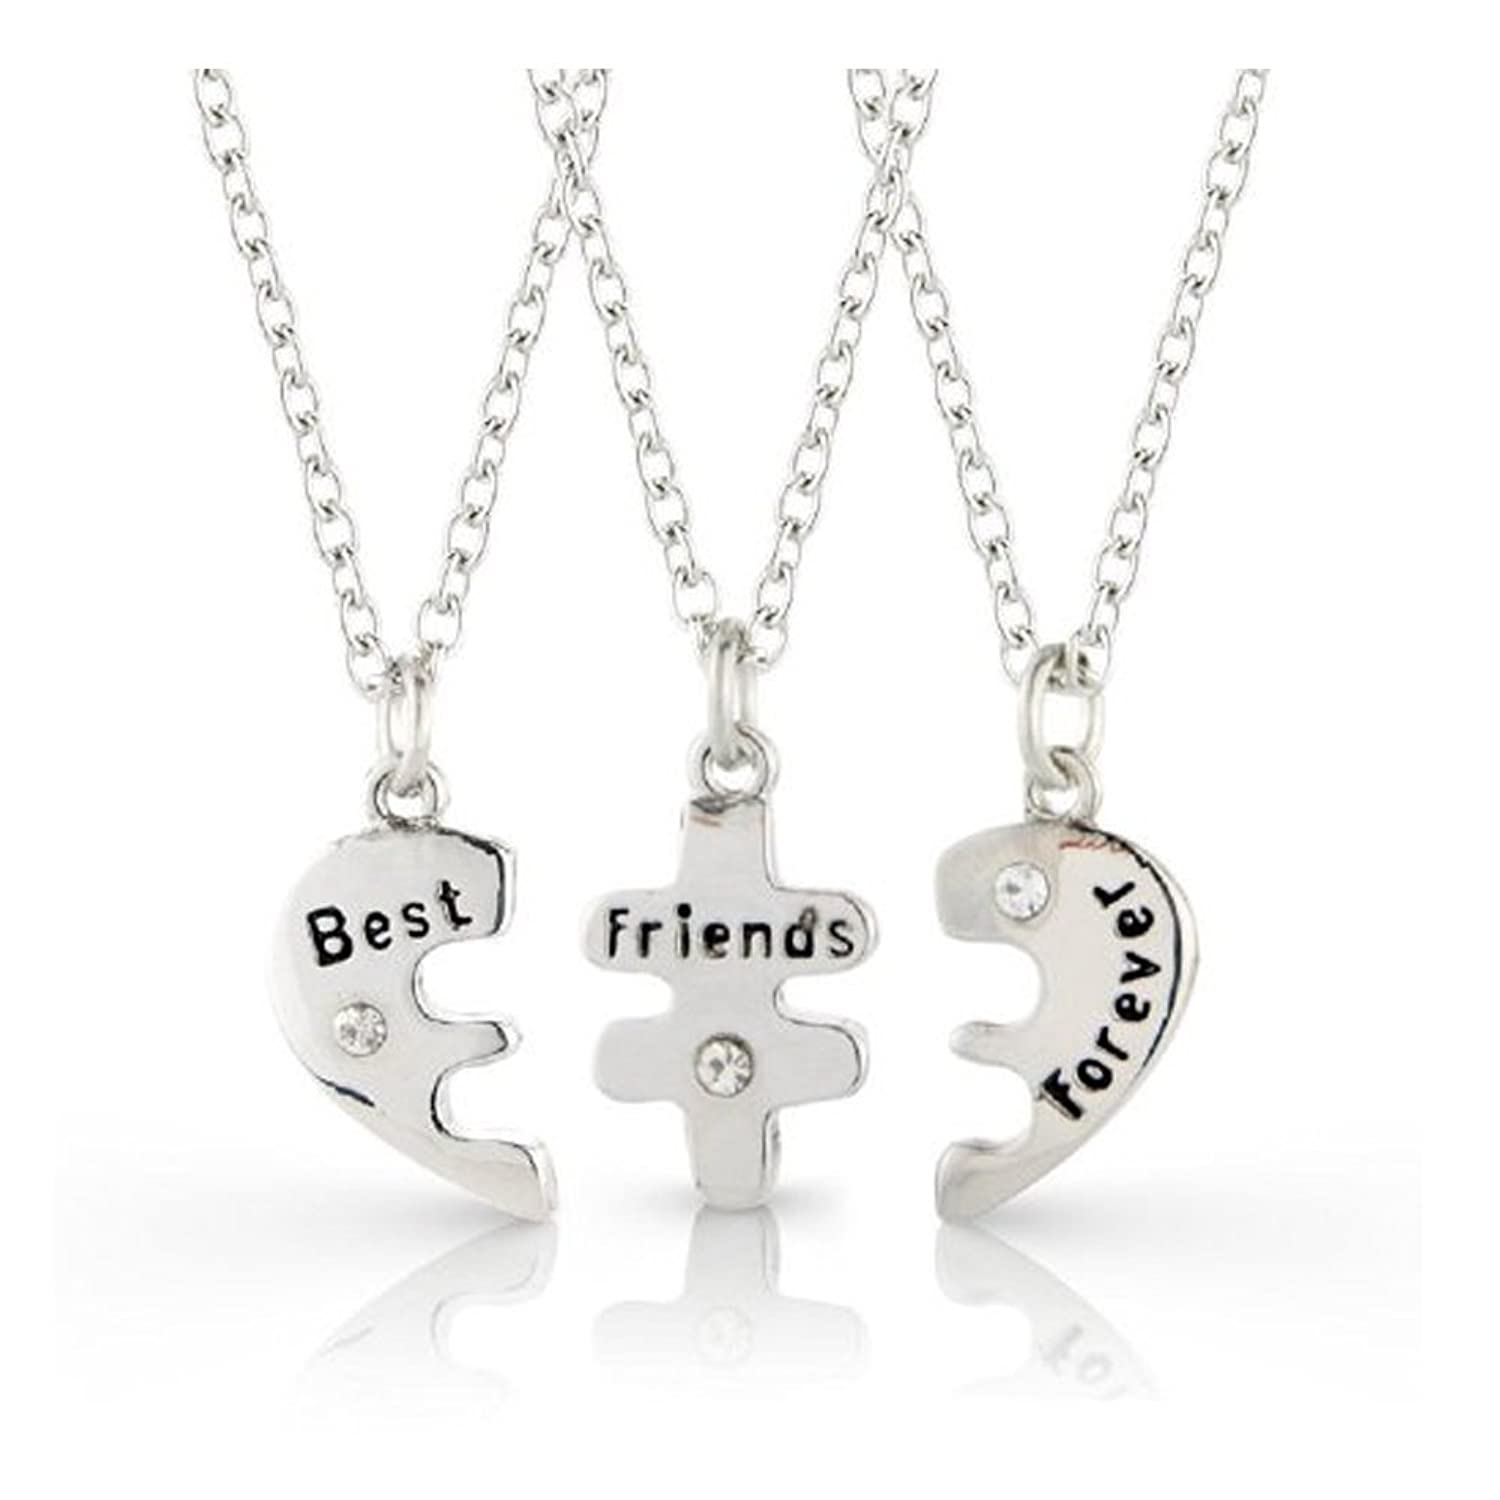 quote chaingethesubject friend pooh pin friendship locket do lockets spell how by you